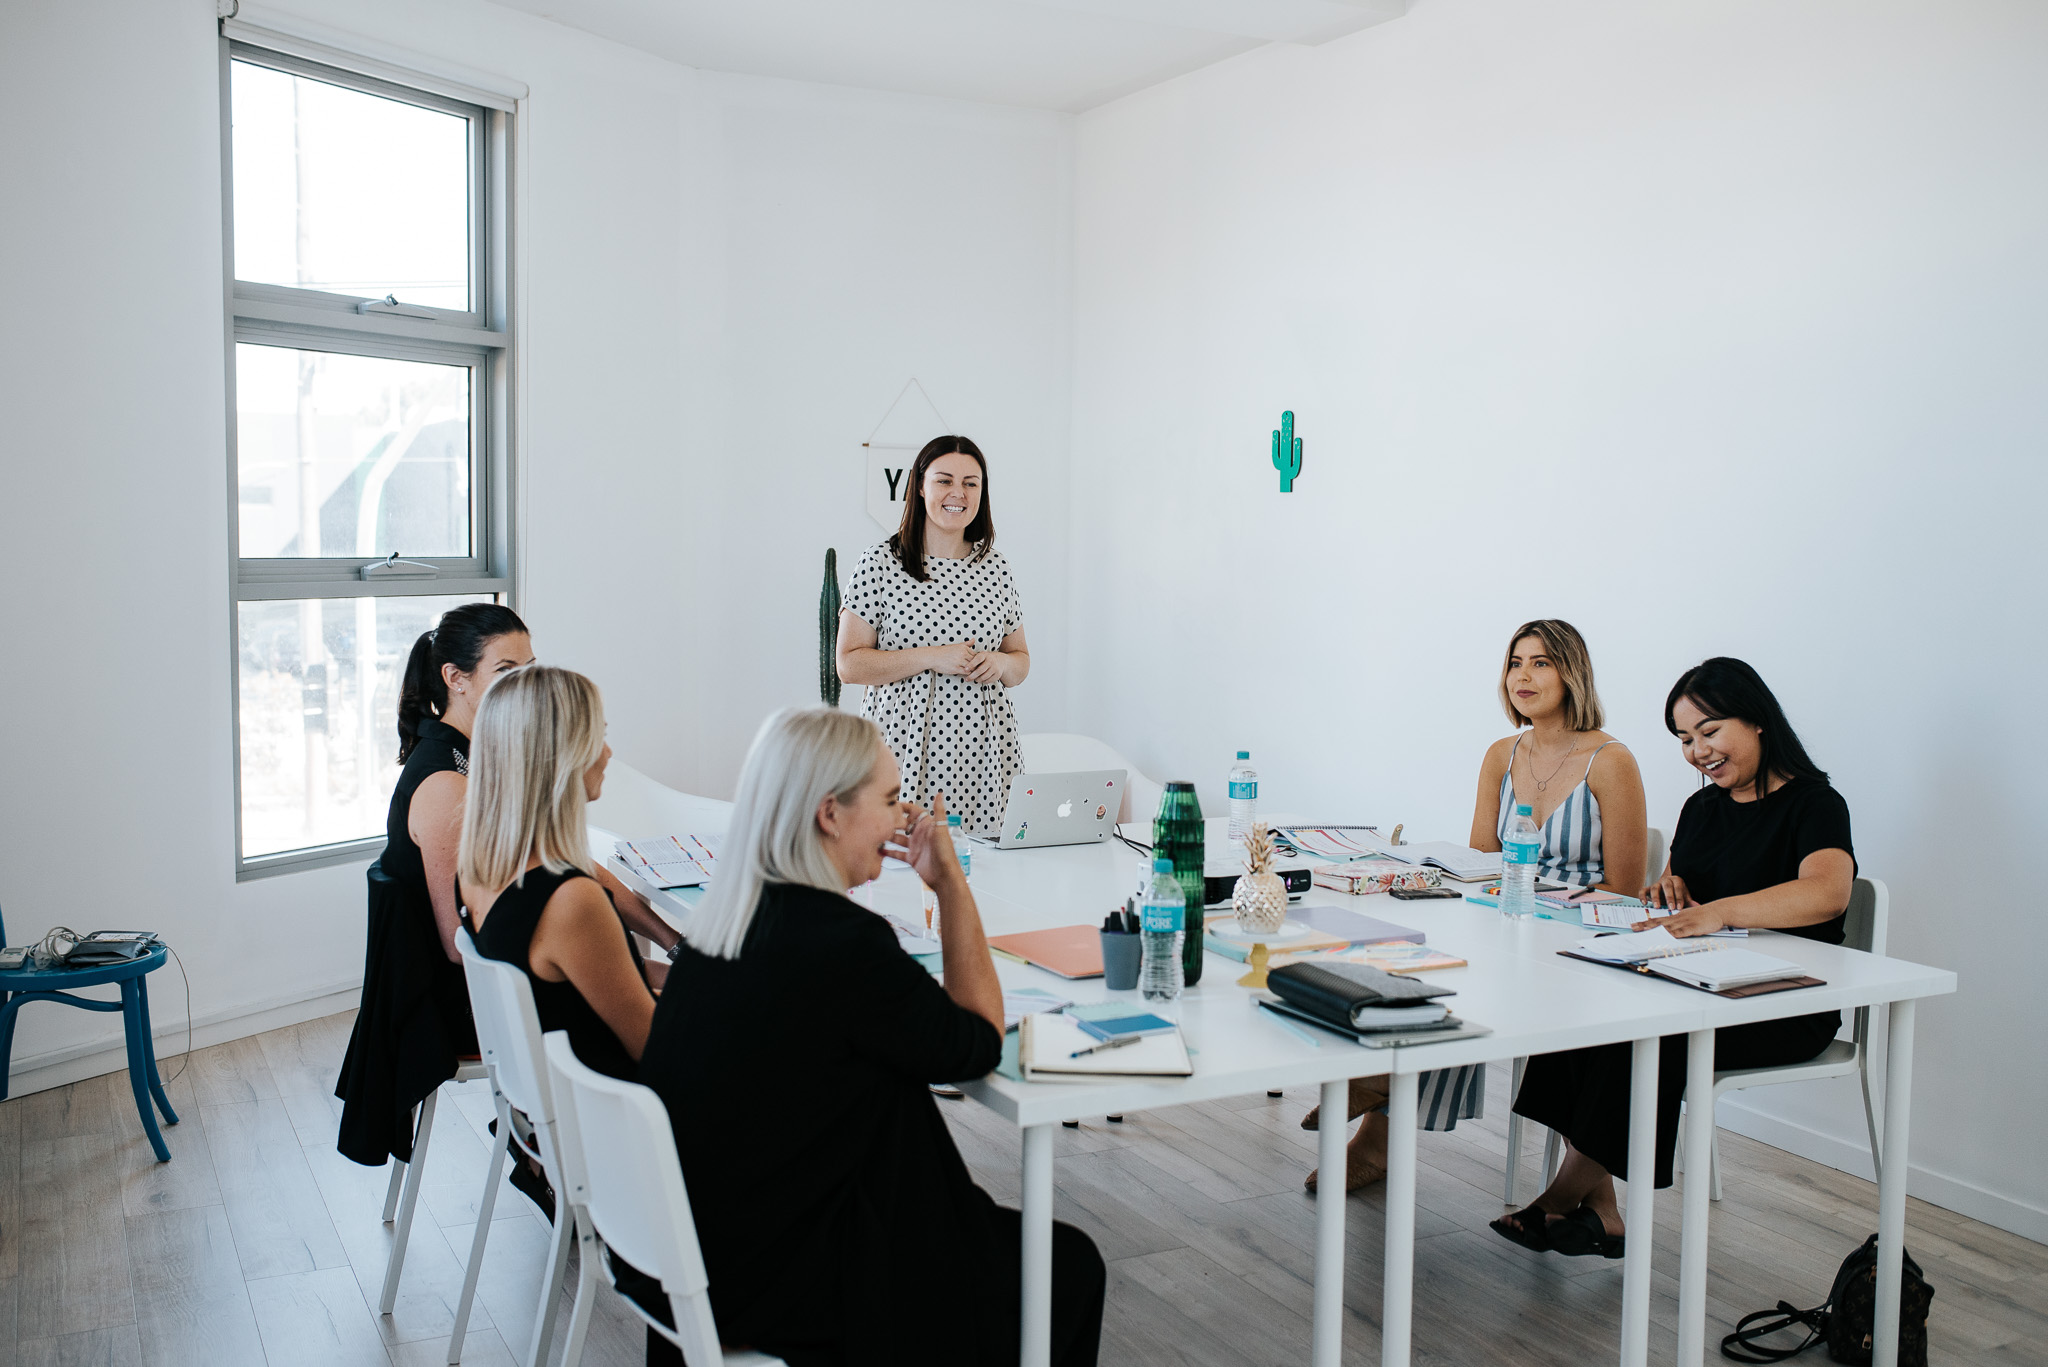 melbourne lifestyle personal branding sessions - jess worrall photography